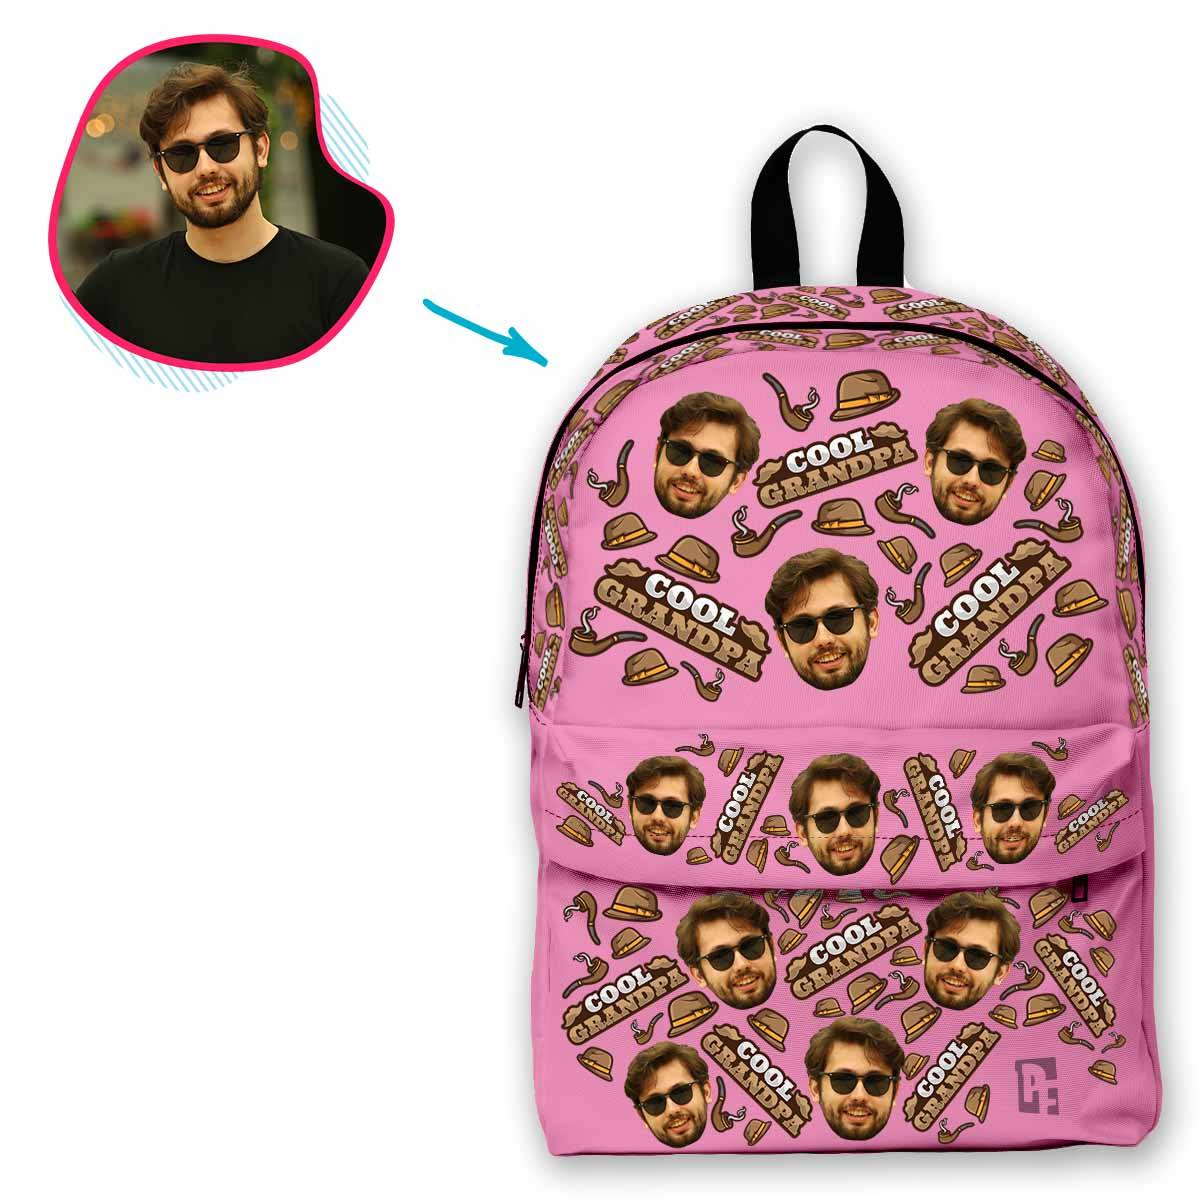 pink Cool Grandfather classic backpack personalized with photo of face printed on it